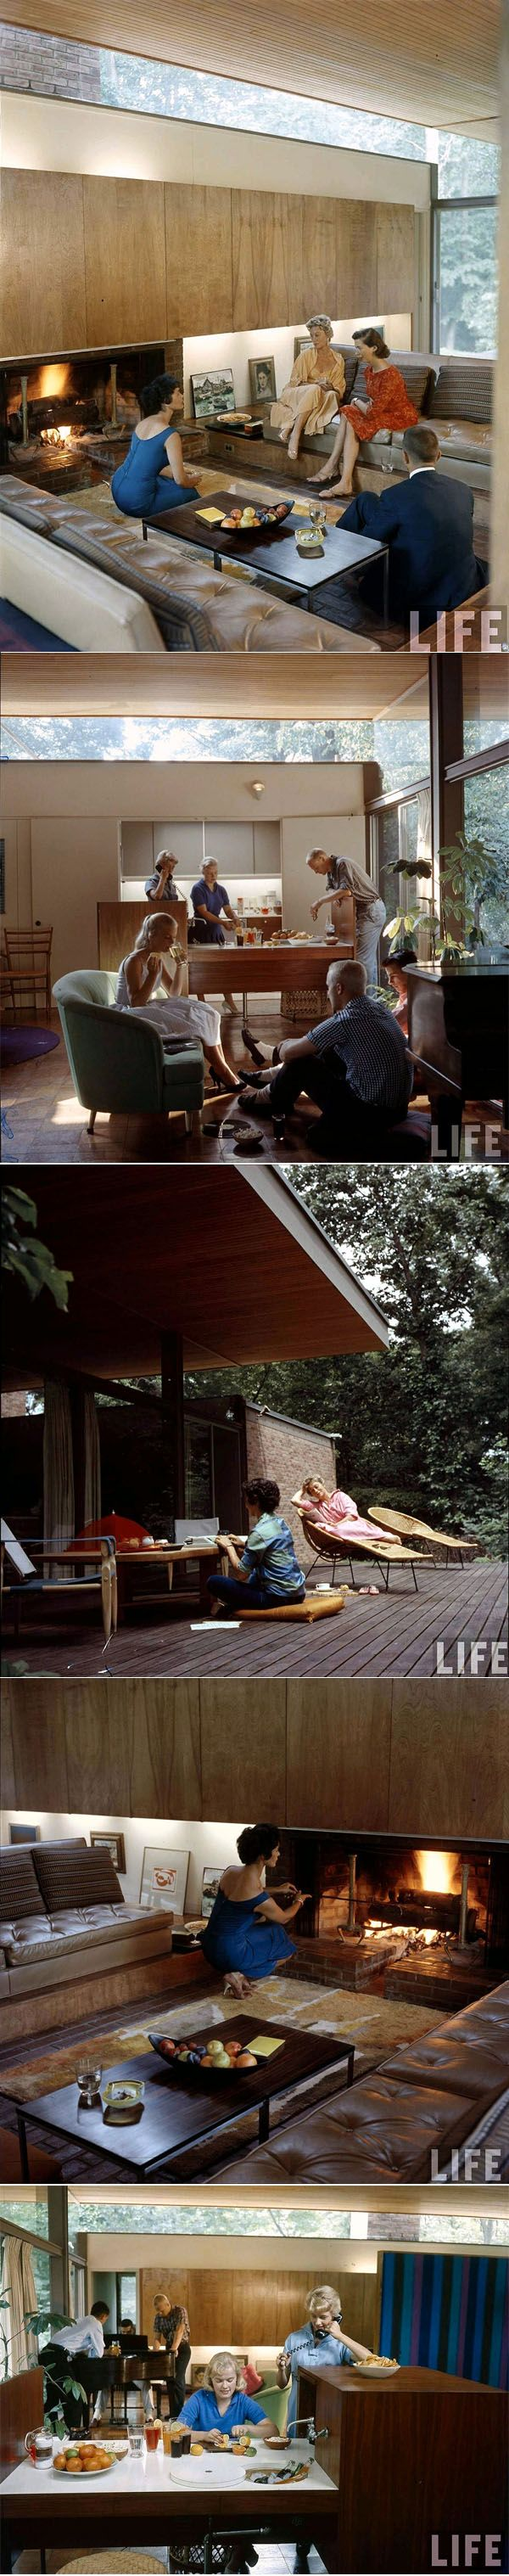 suburban house designed by Architect, Ulrich Franzen/1958